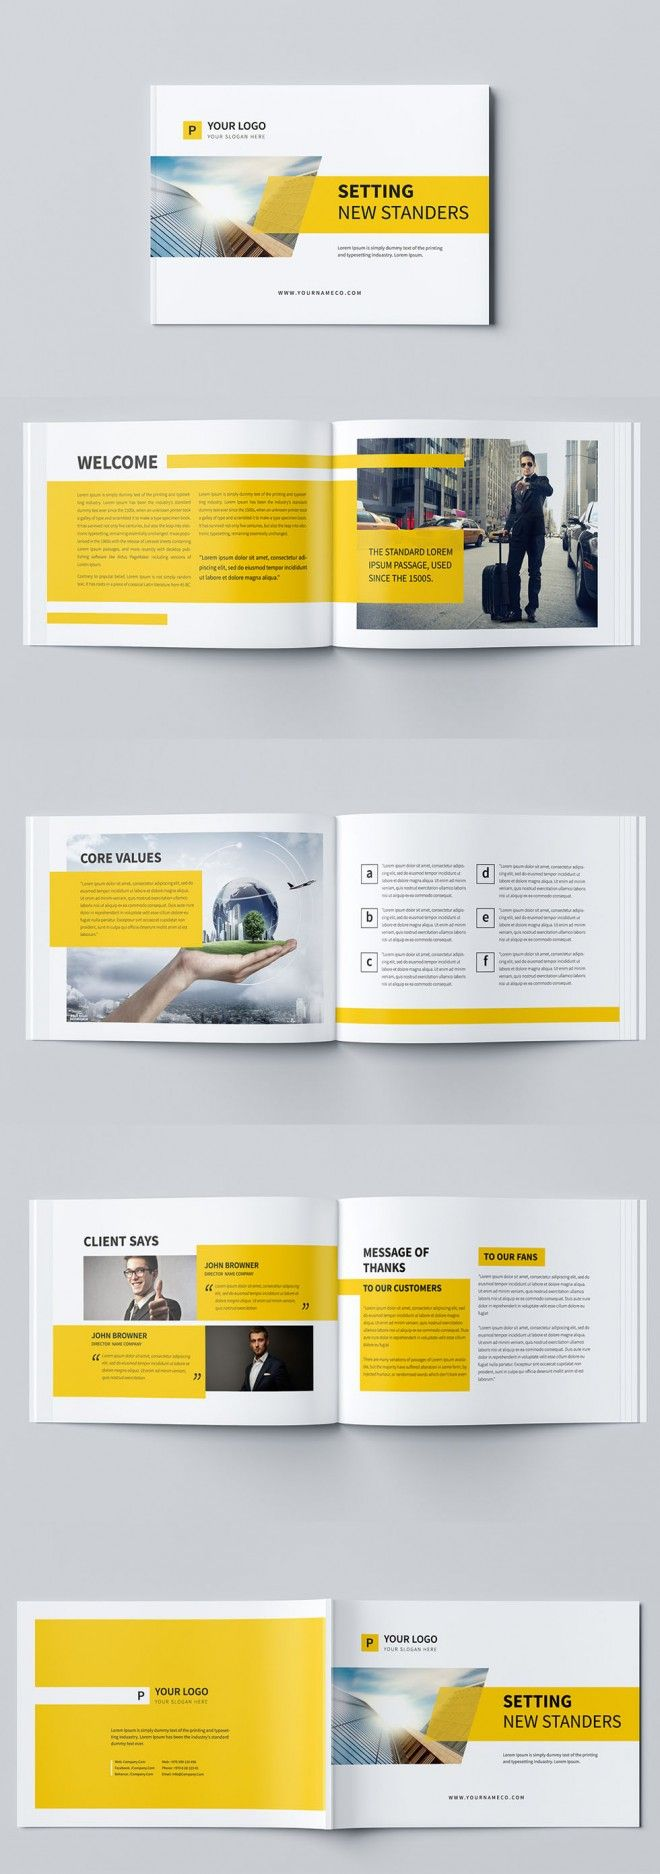 Best 25 brochure design ideas only on pinterest Create a blueprint